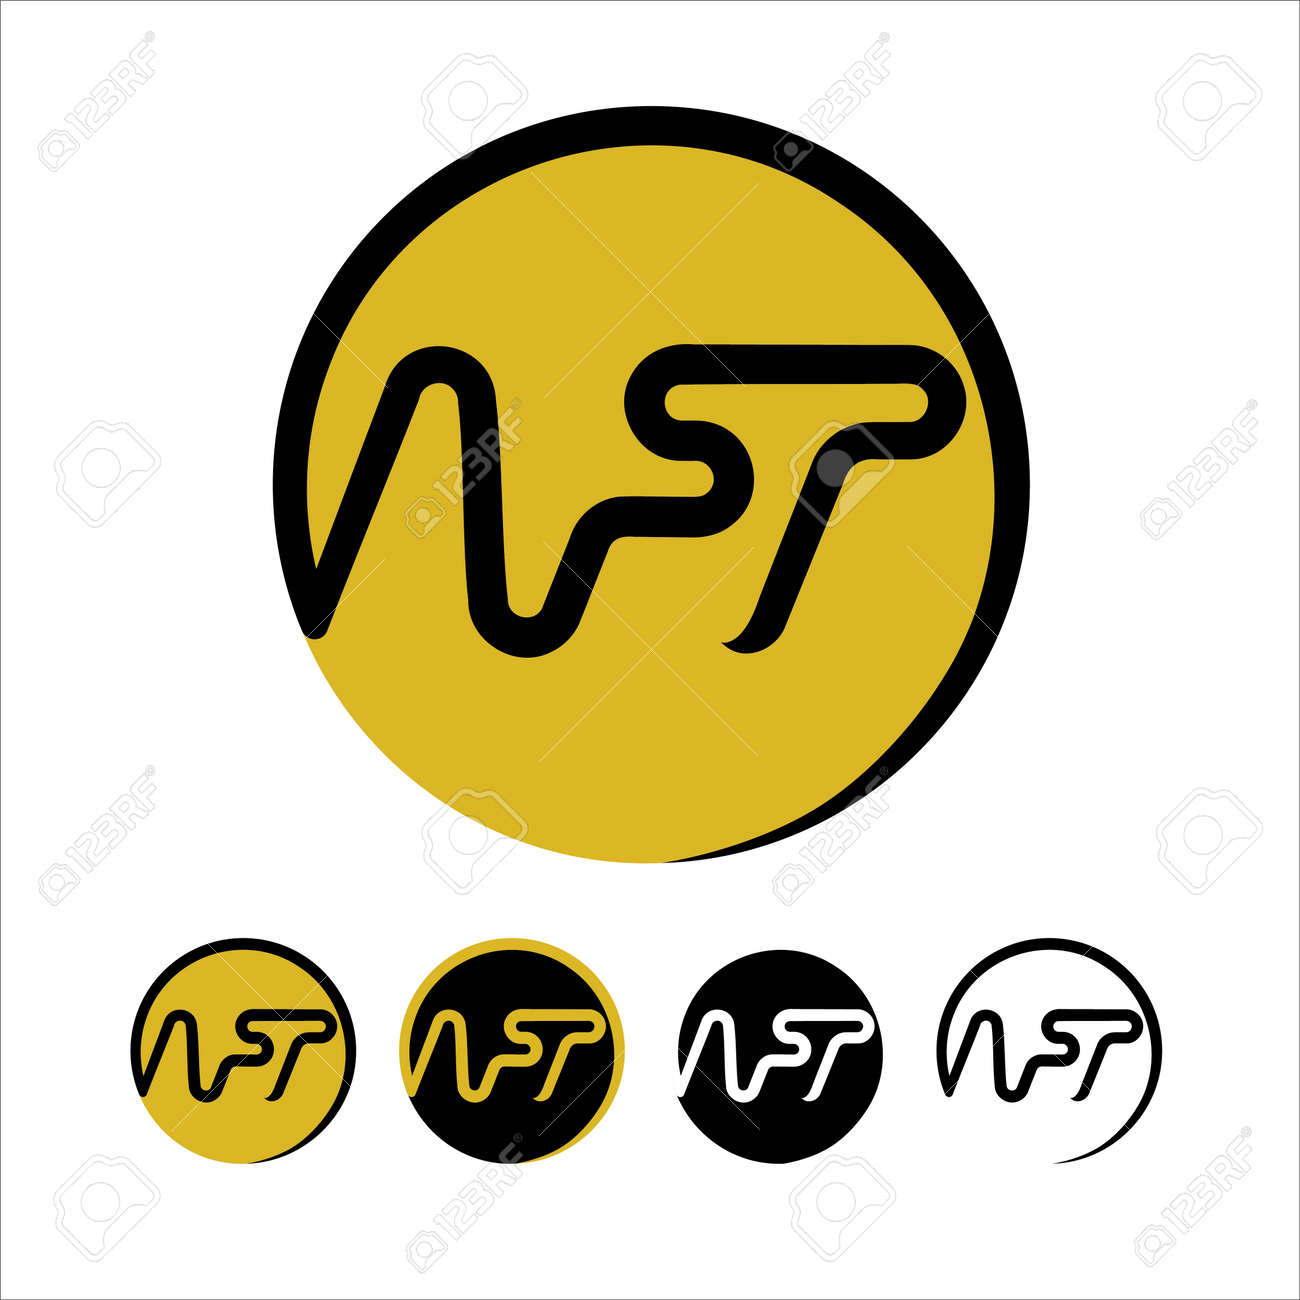 NFT- Non-fungible token can represent digital files such as art, audio, video, and other forms of creative work on a digital ledger called a blockchain, where each NFT can represent a unique digital item, and thus they are not interchangeable. - 167386166